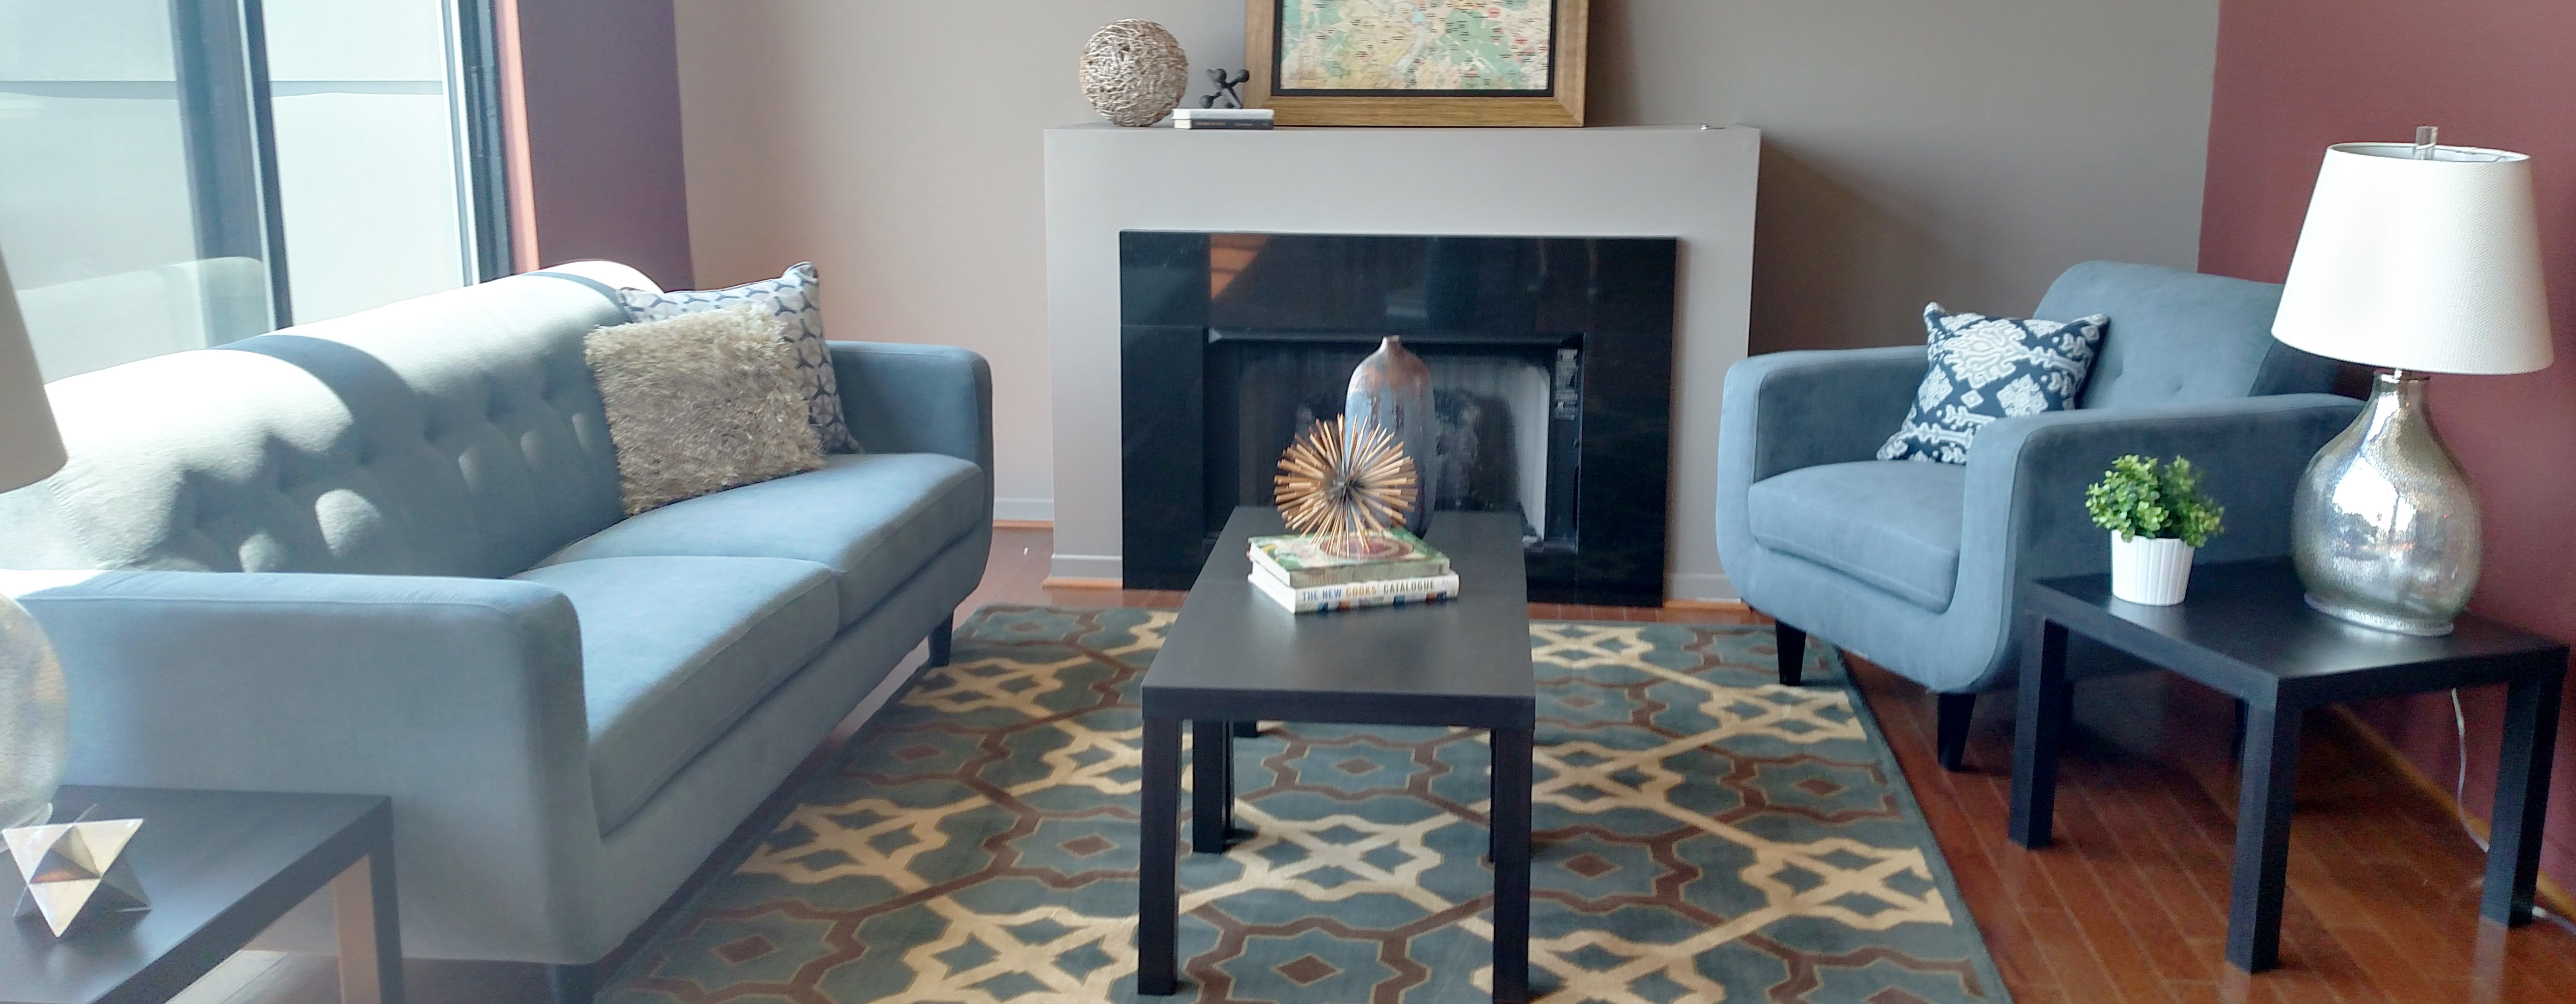 Home interior design staging company oakland county mi impact home staging experts for Interior design staging companies